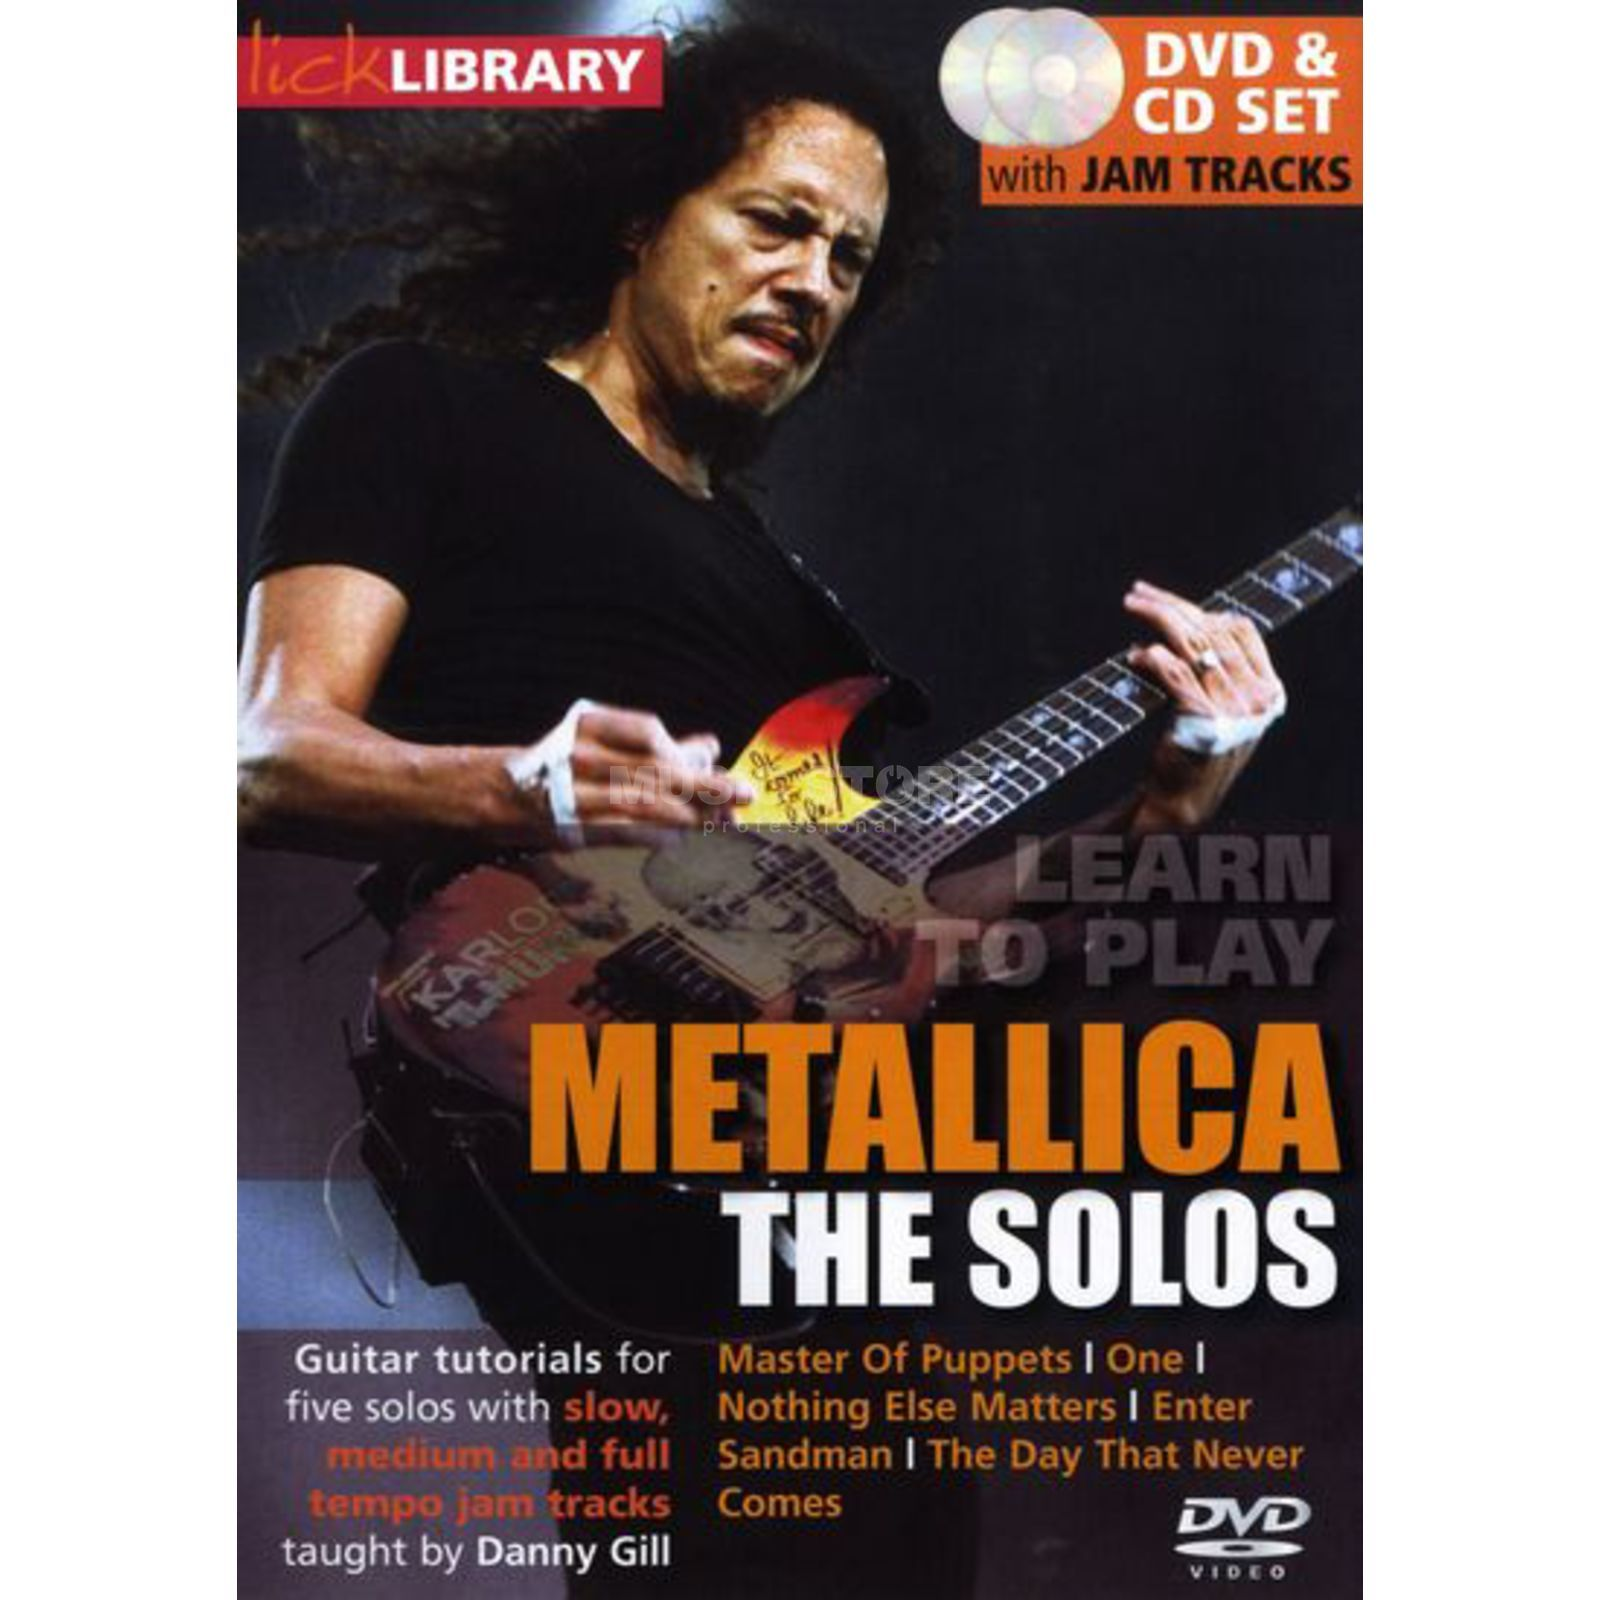 Roadrock International Lick Library -  Metallica The Solos, DVD and CD Produktbillede